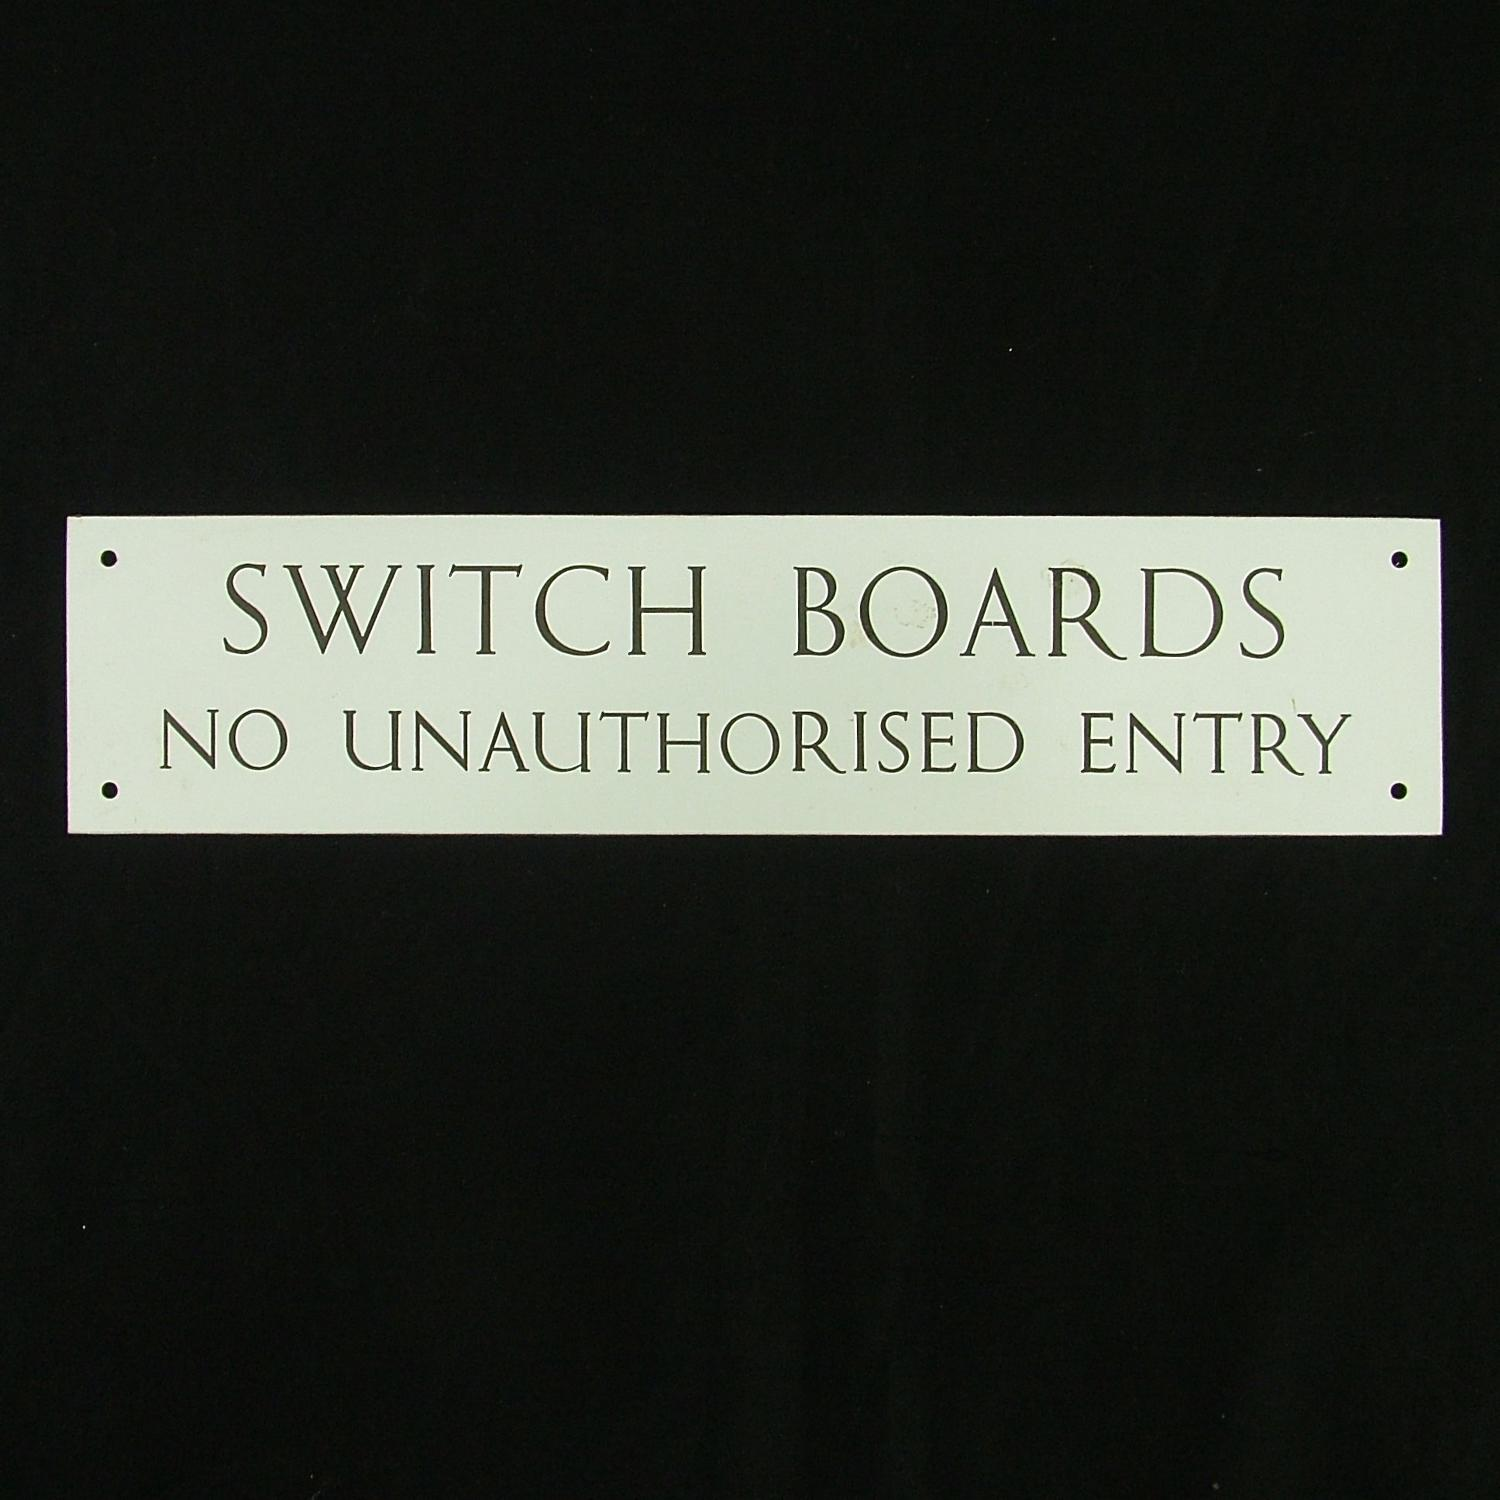 Royal Navy D-day HQ switchboard sign